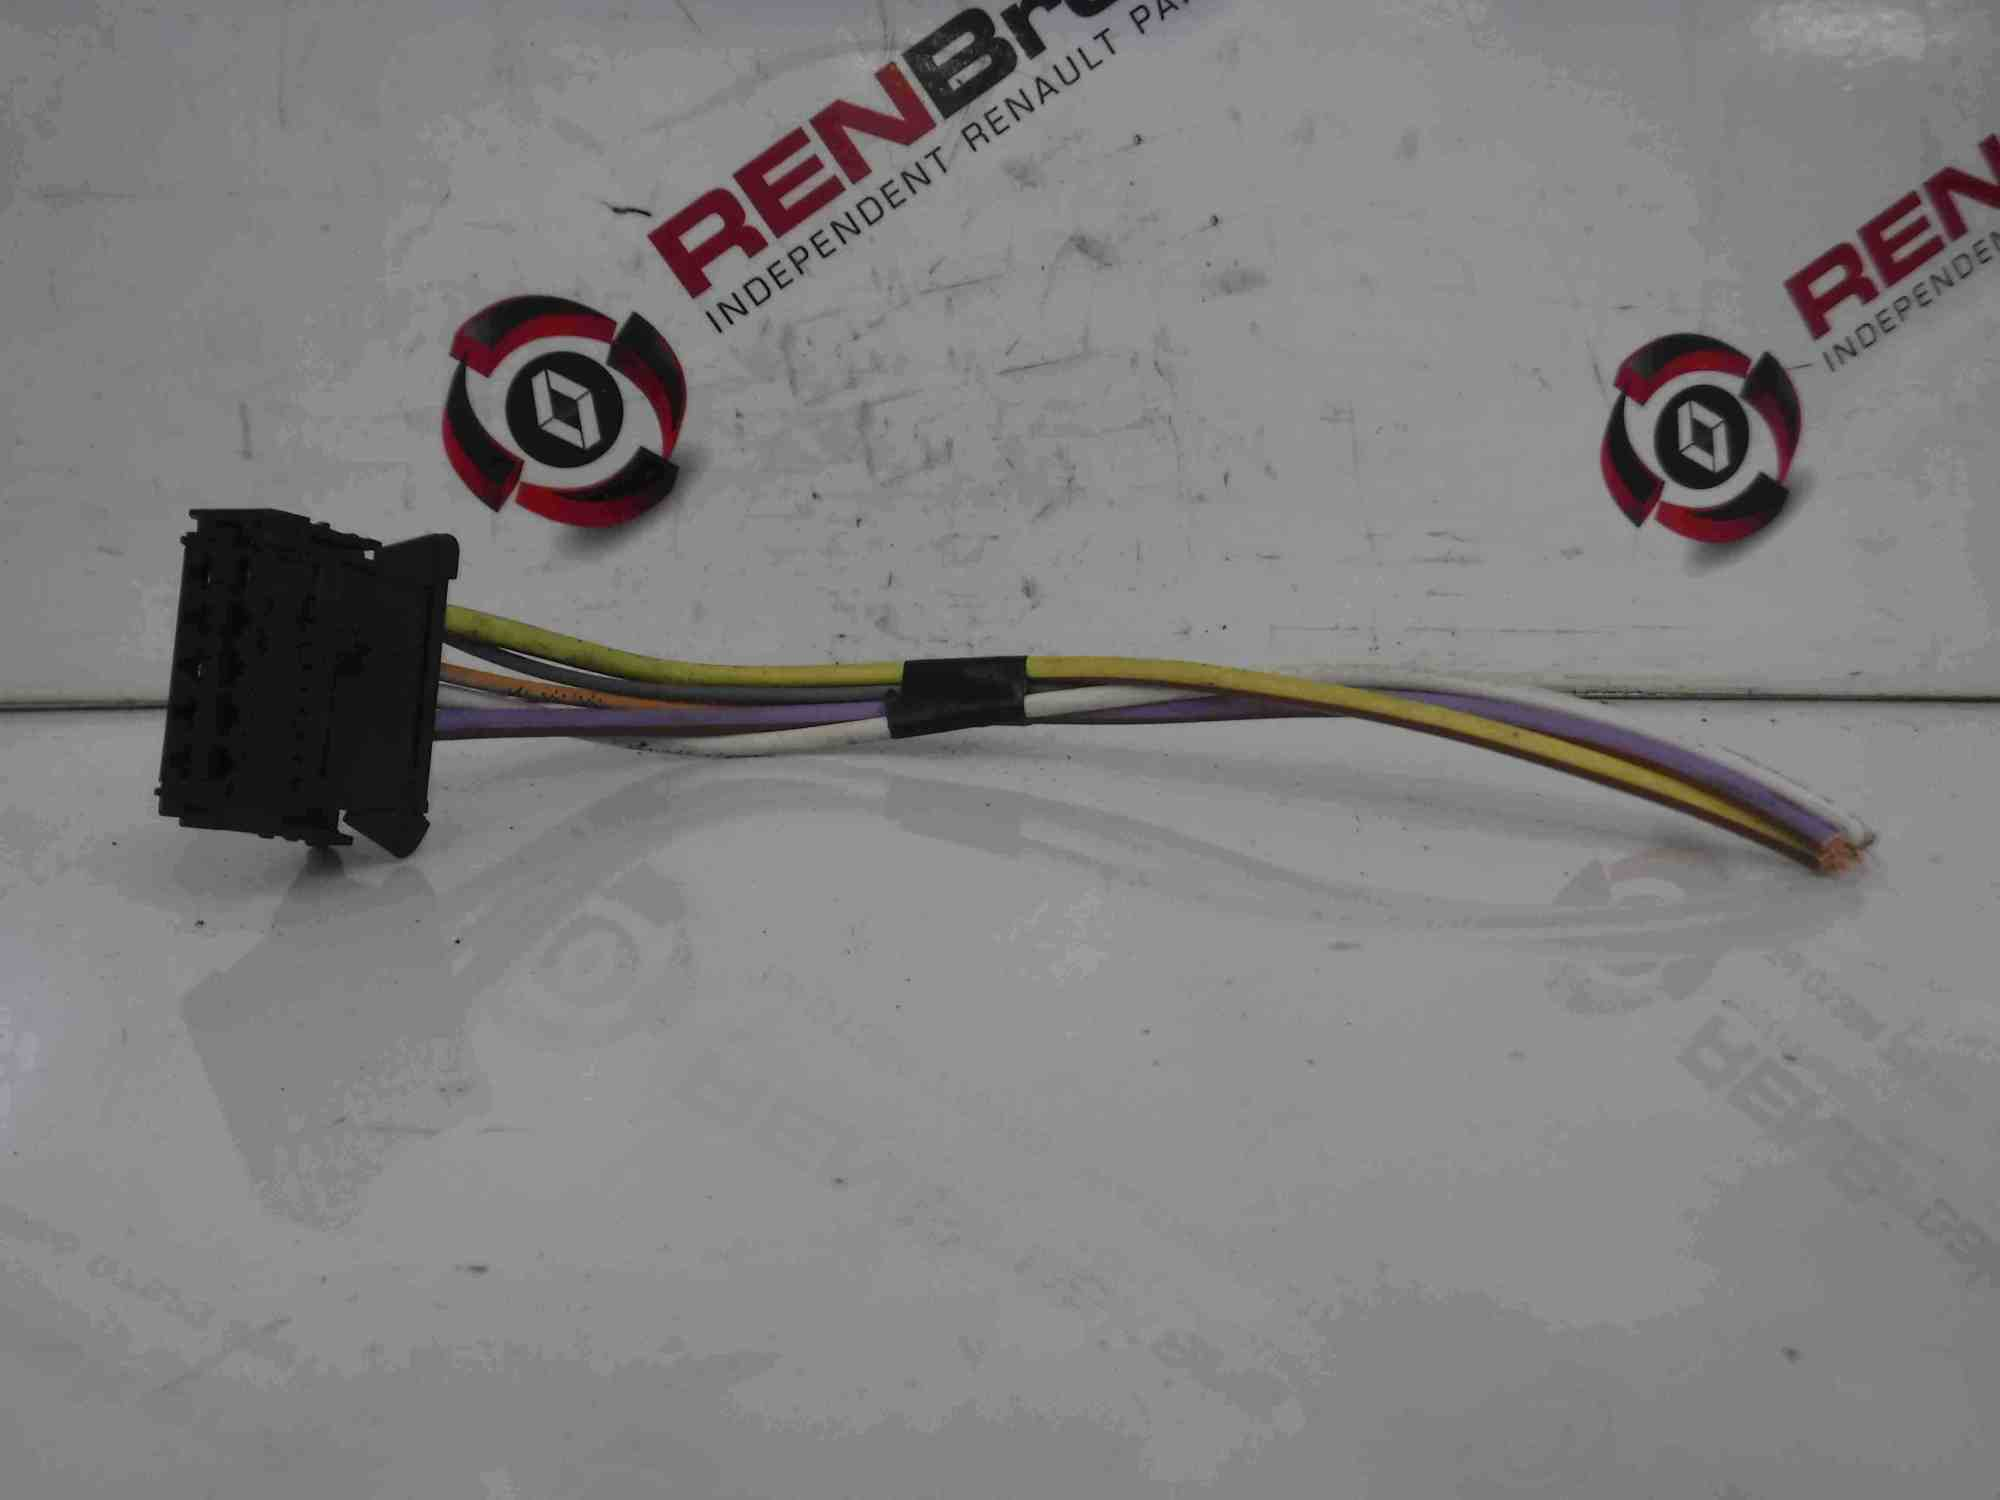 hight resolution of renault megane 2002 2008 heater blower resistor wiring loom plug wire store renault breakers used renault car parts spares specialist